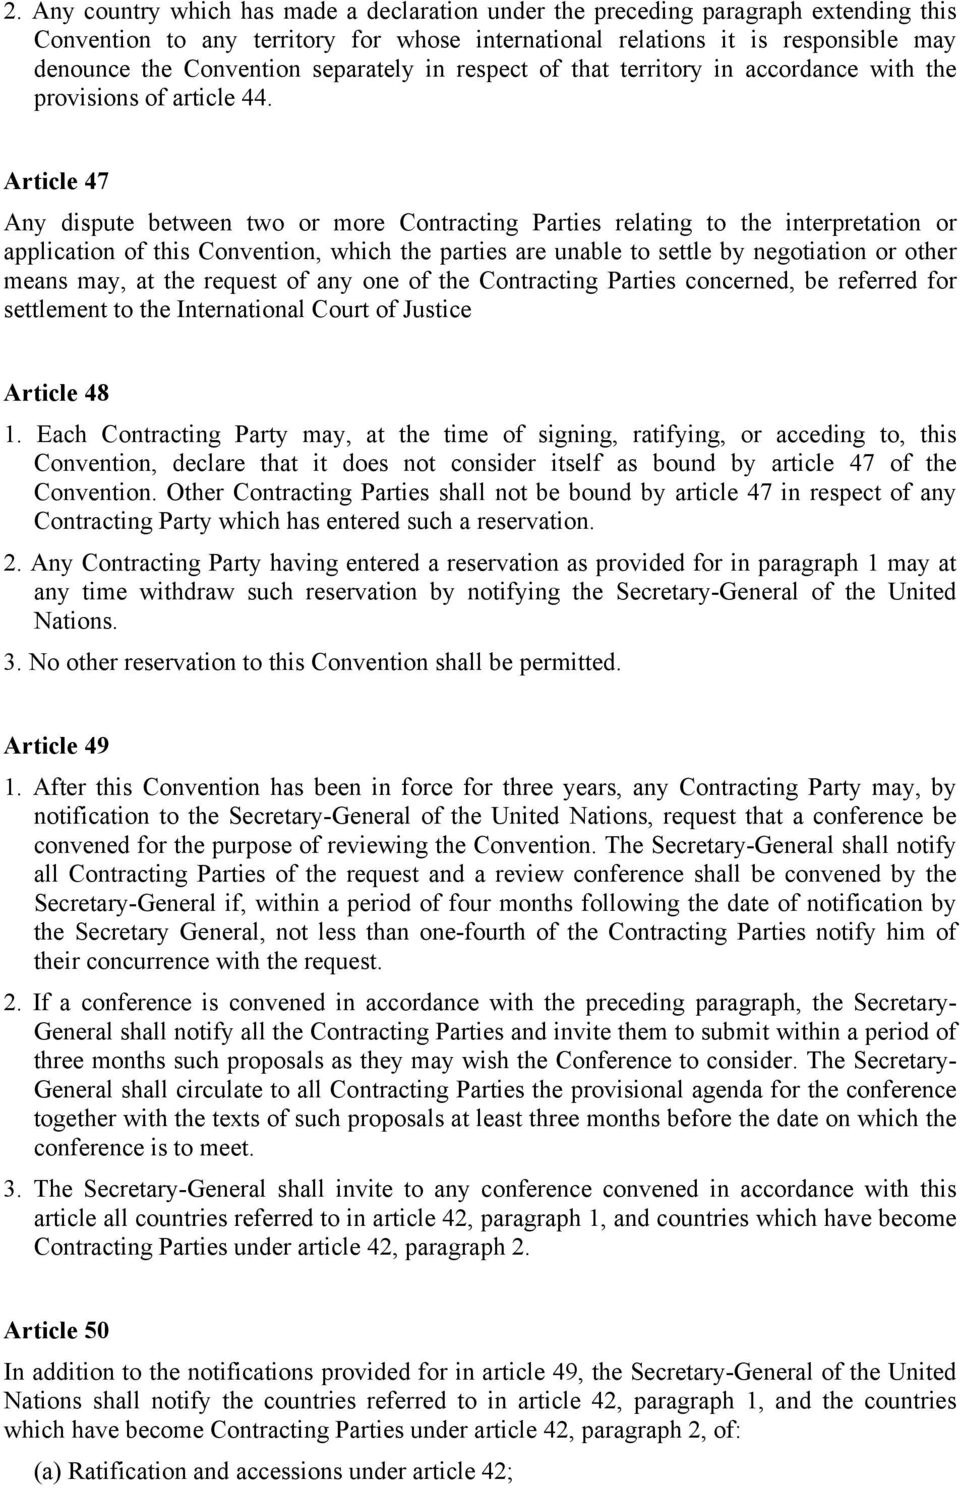 Article 47 Any dispute between two or more Contracting Parties relating to the interpretation or application of this Convention, which the parties are unable to settle by negotiation or other means